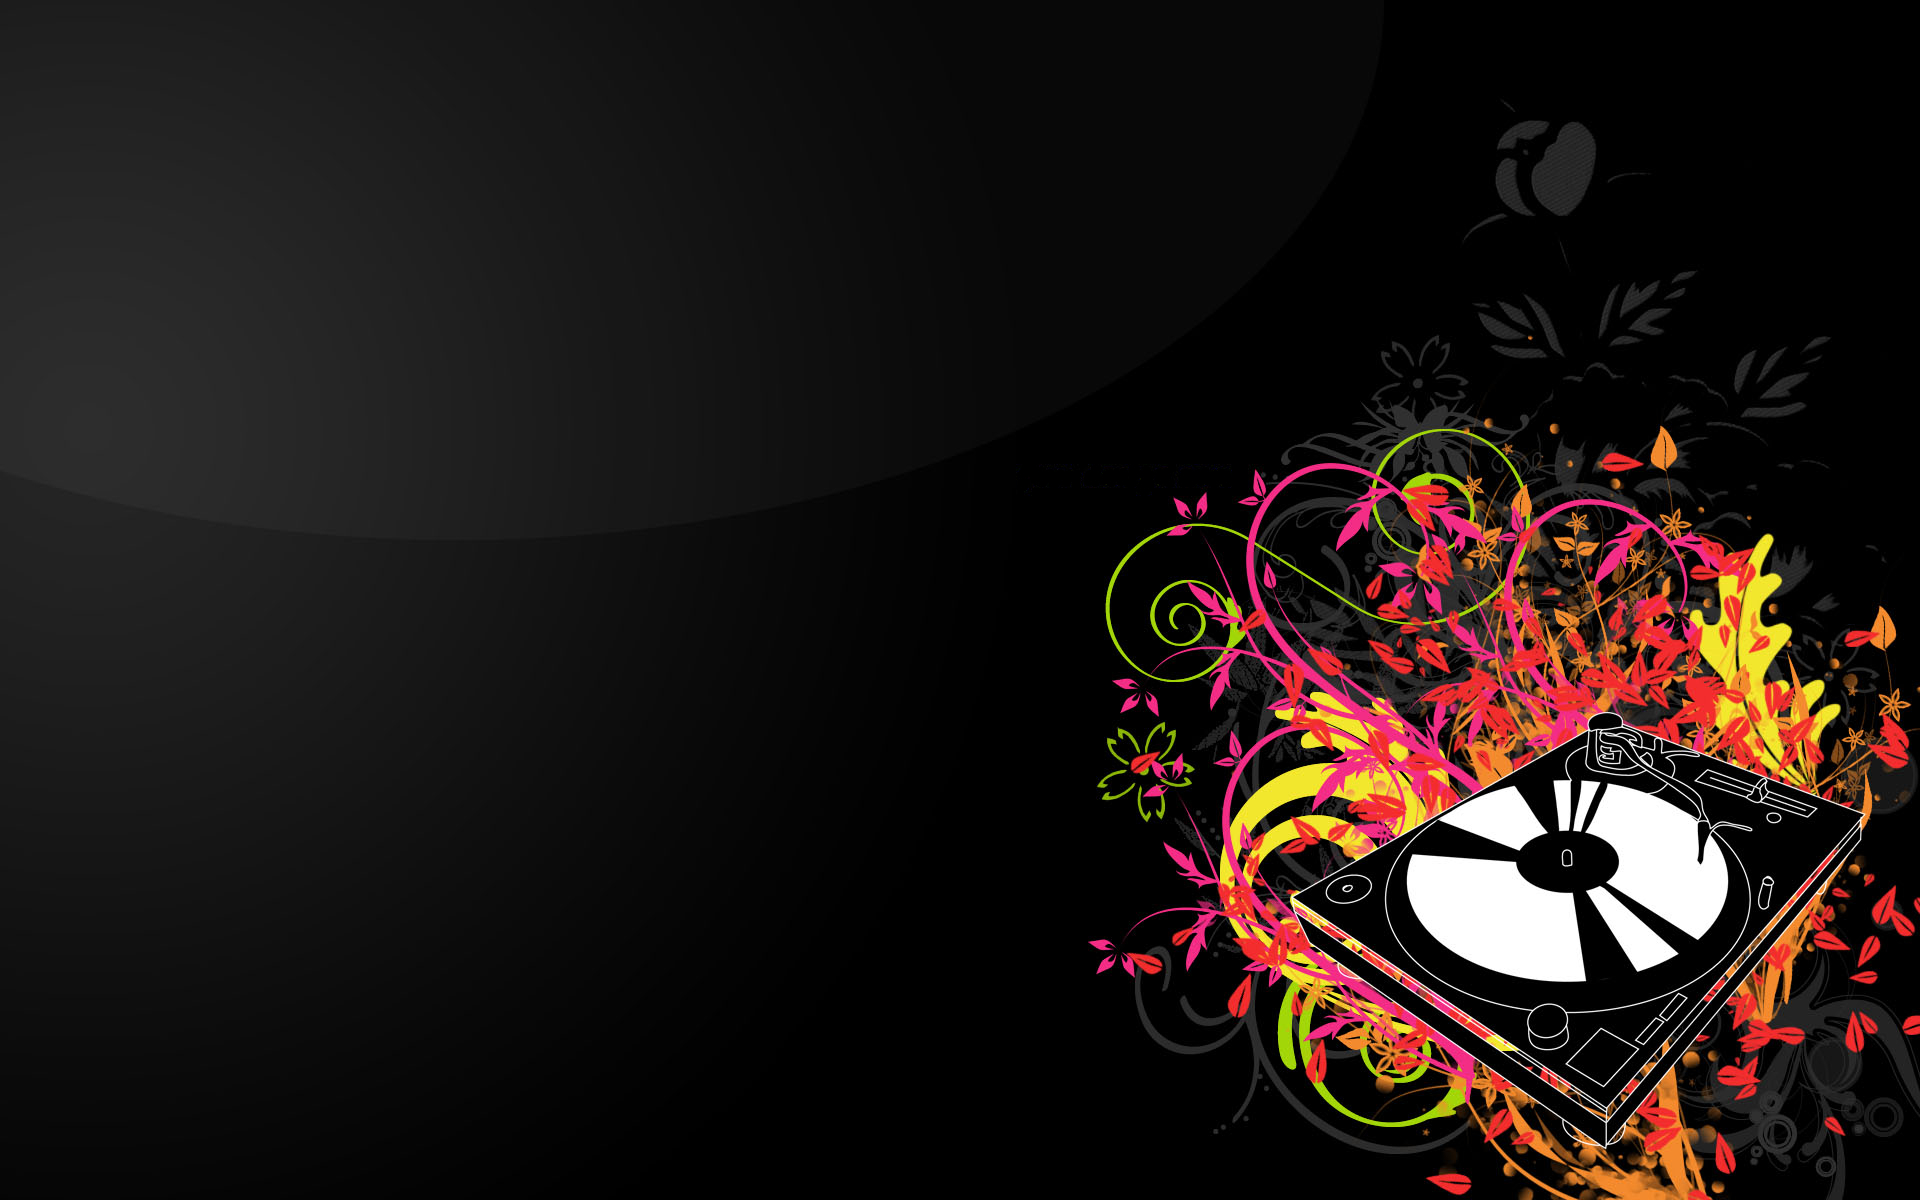 Wallpapers Abstract DJ Myspace Backgrounds Abstract DJ Backgrounds 1920x1200